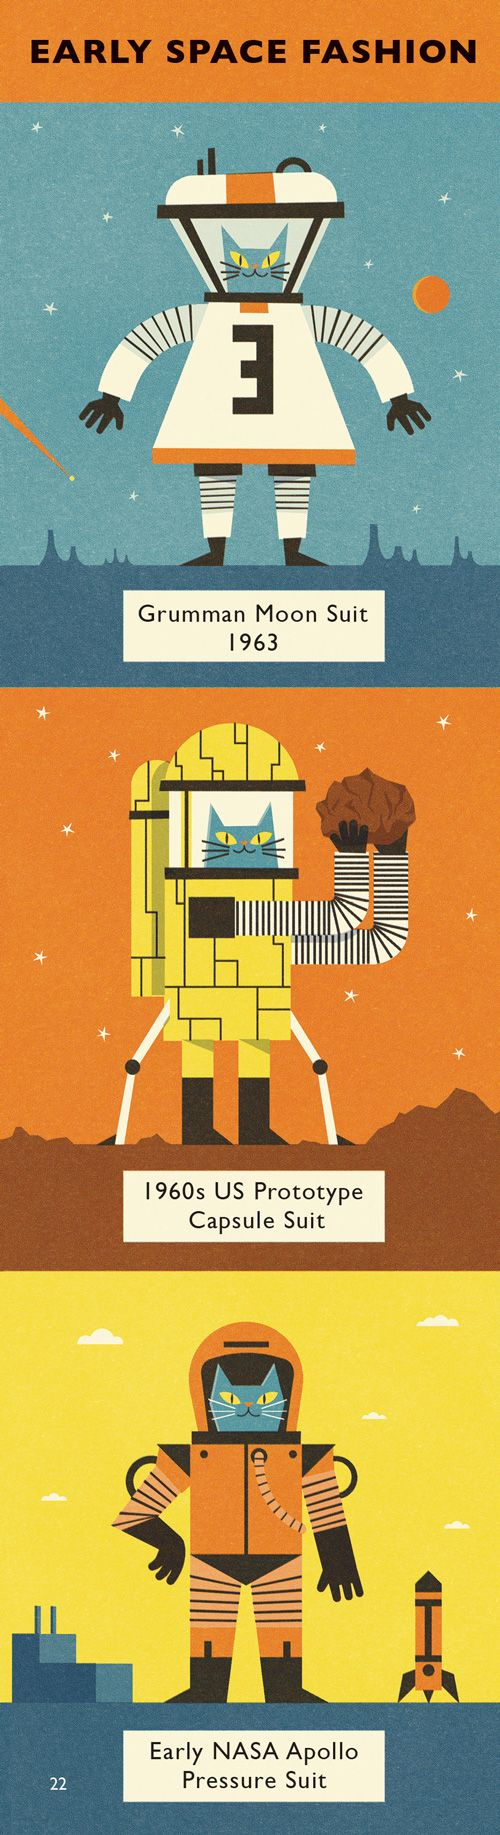 Professor Astro Cat's Frontiers of Space: Imaginative and Illuminating Children's Book Tickles Our Zest for the Cosmos